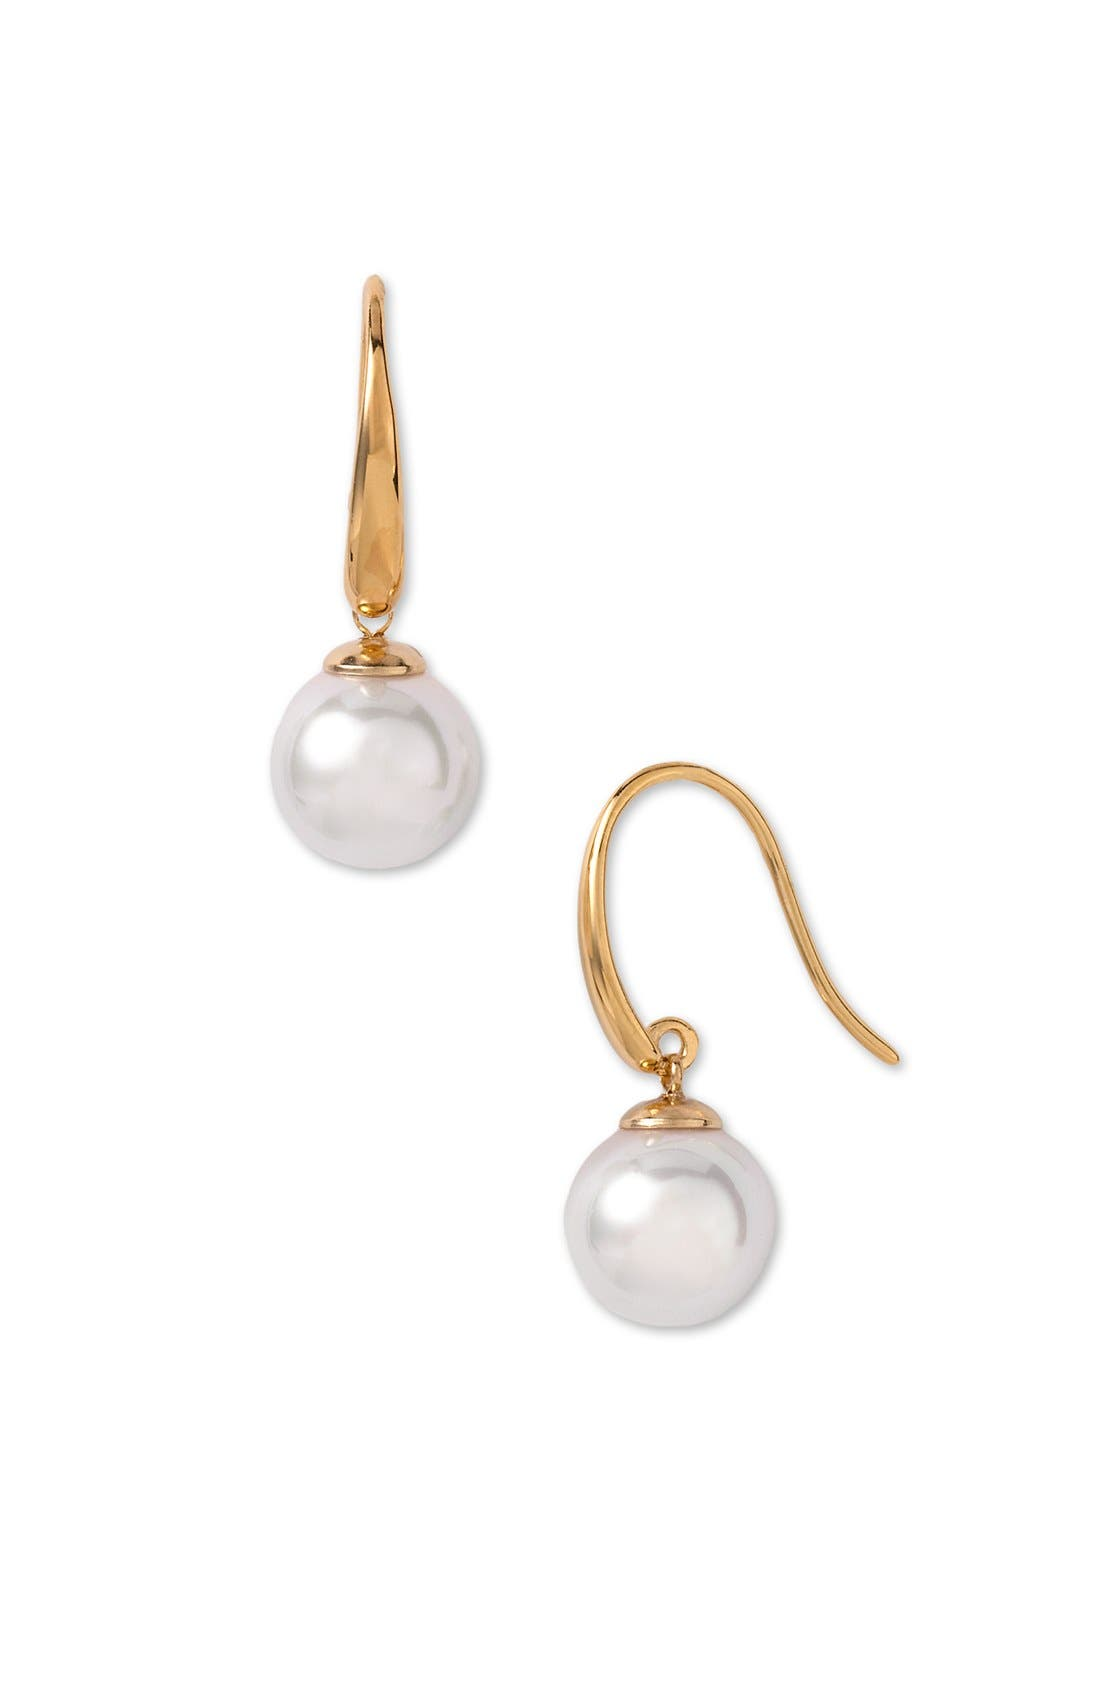 10mm Simulated Pearl Drop Earrings,                             Main thumbnail 1, color,                             White/ Gold